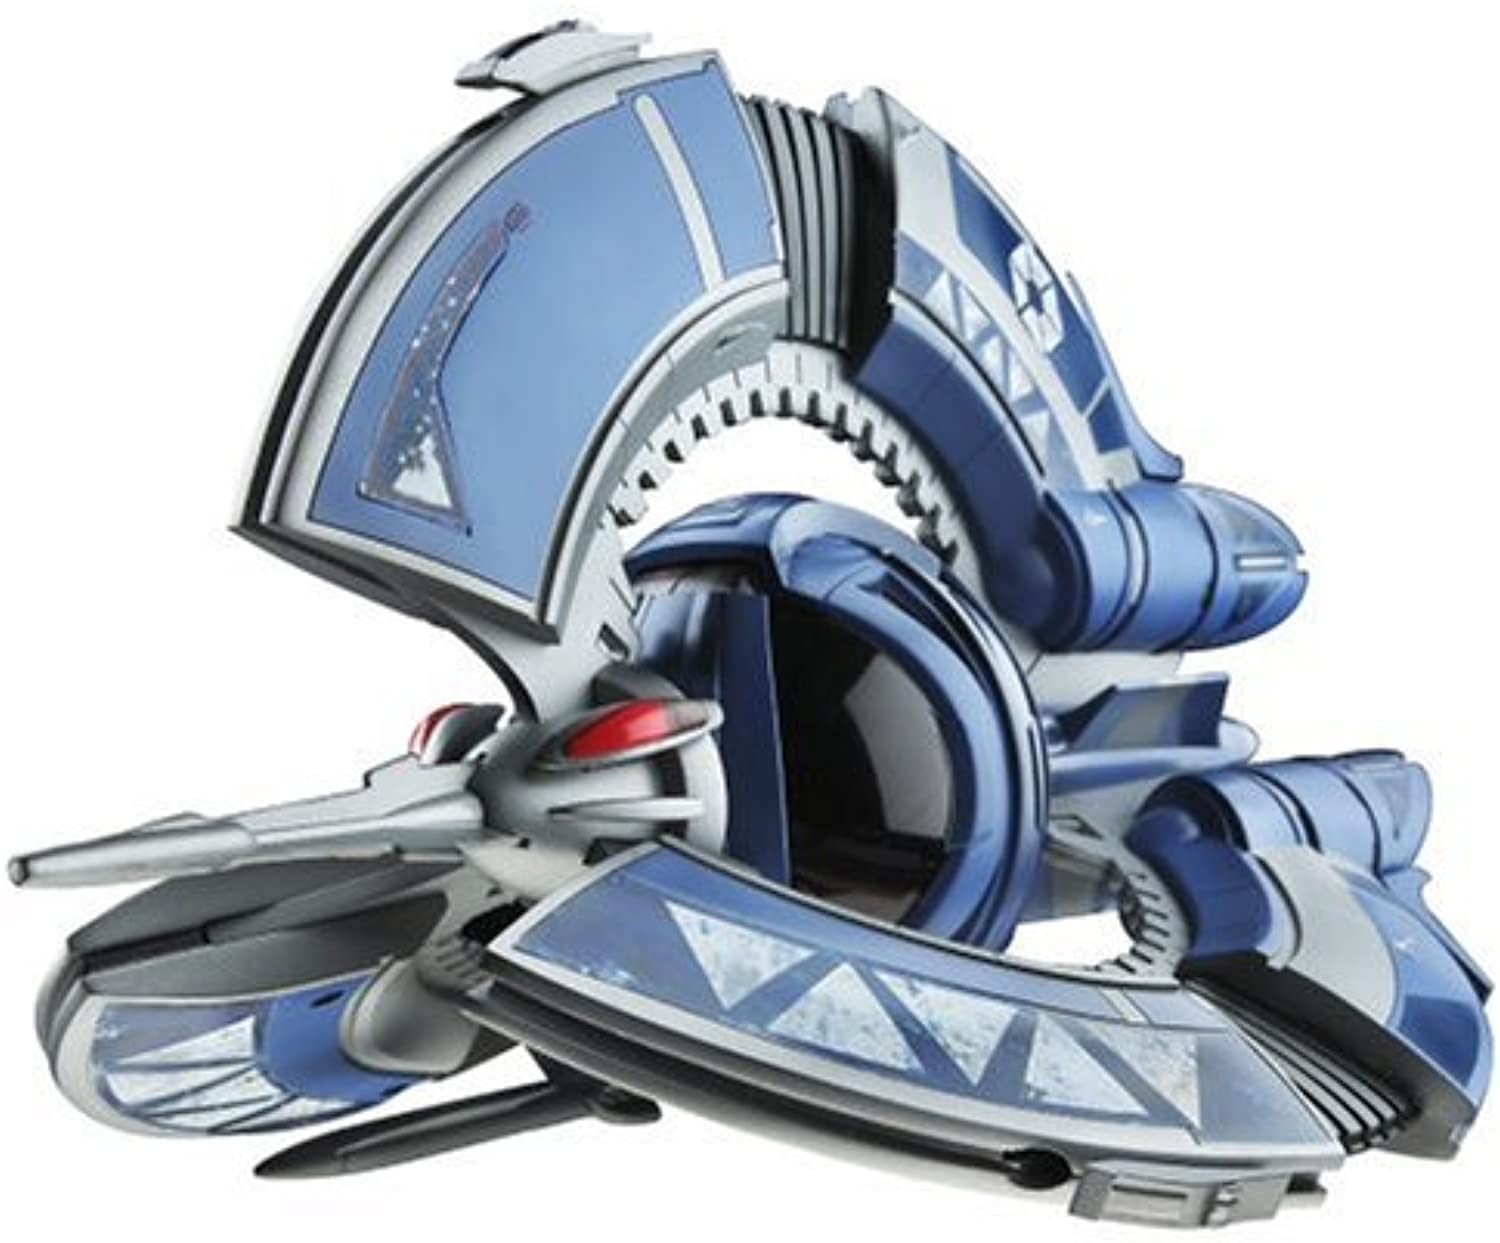 DROID TRIFIGHTER  With Buzz Droid Drop Attack  Star Wars Revenge of the Sith 2006 Vehicle